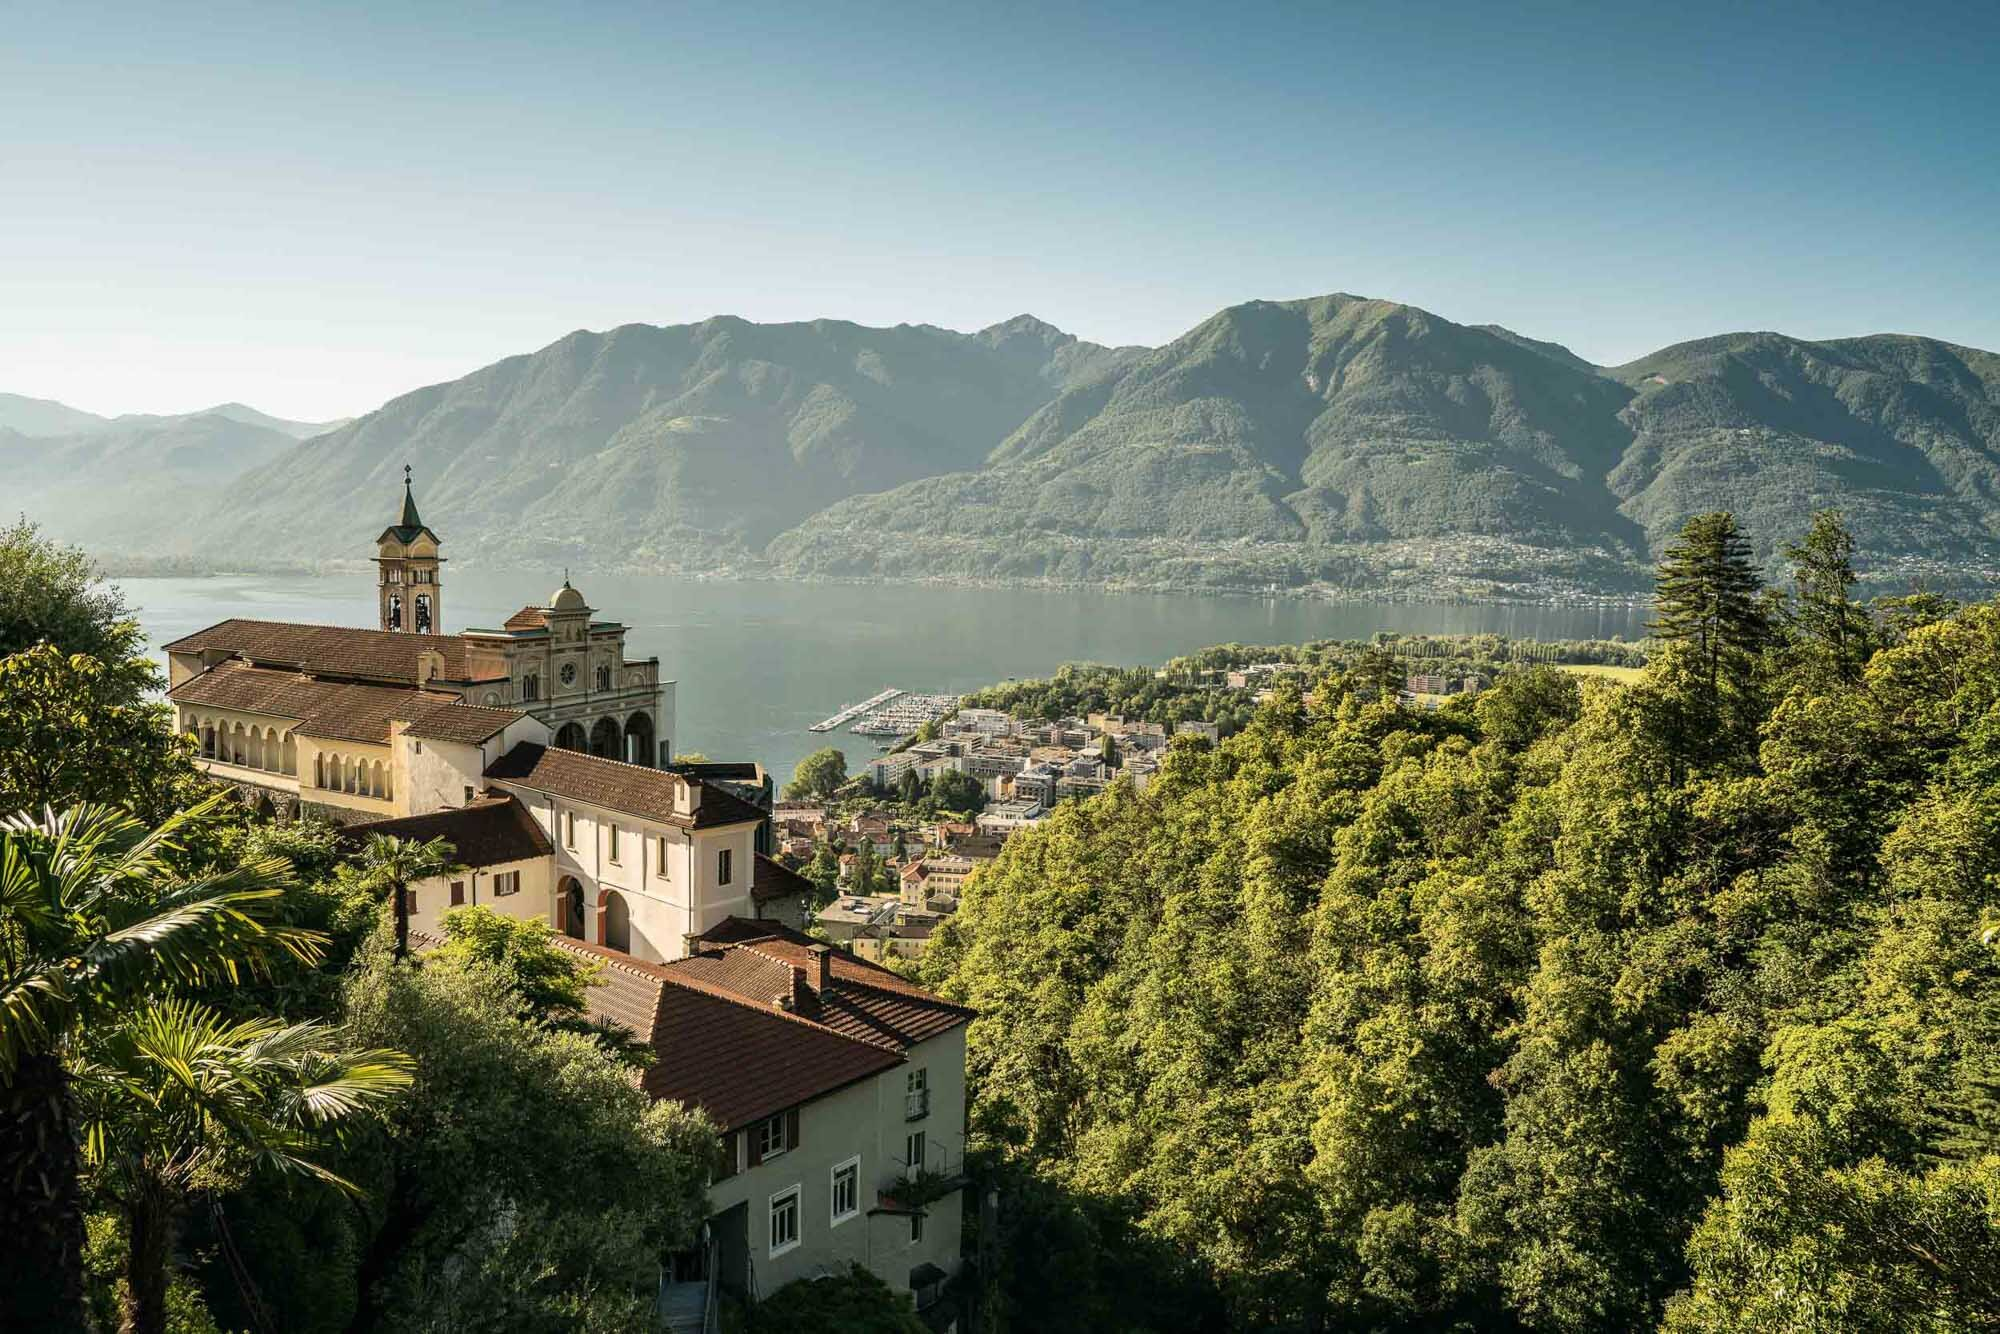 Madonna del Sasso overlooking Locarno and Lake Maggiore, Orselina. Copyright by: Switzerland Tourism